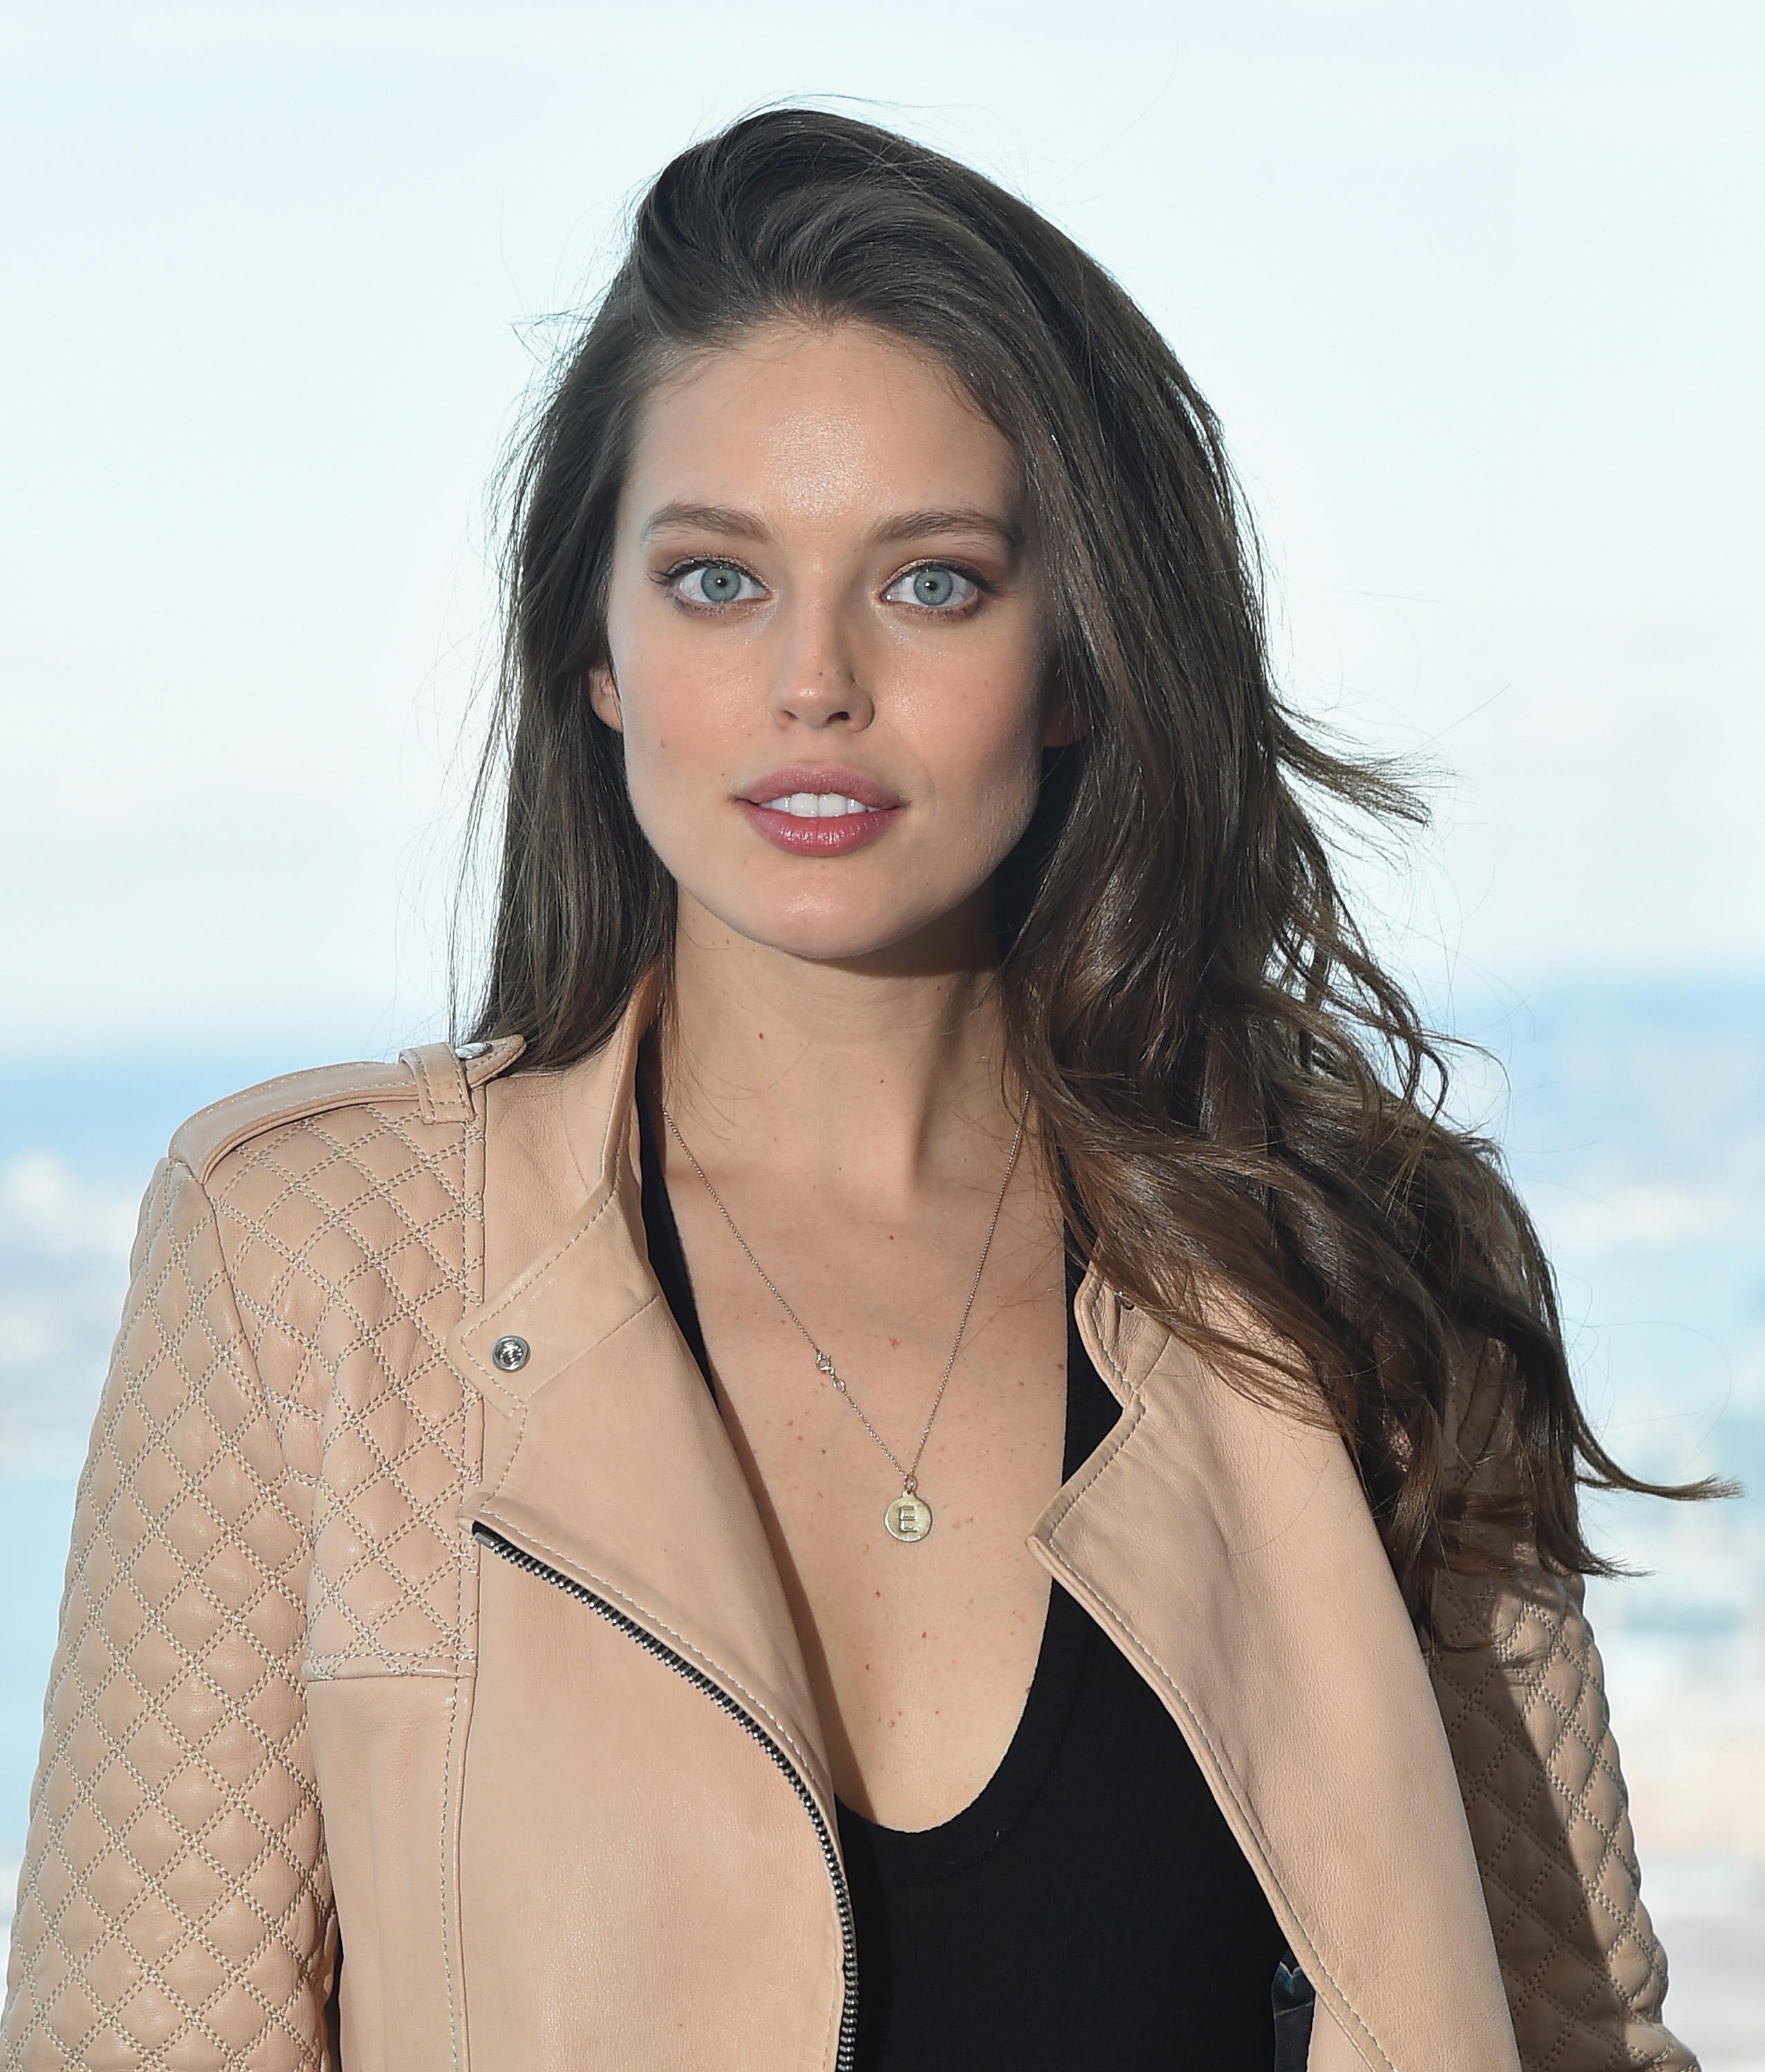 Sports Illustrated Swimsuit Model Emily DiDonato reveals SI Swimsuit 2016 launch week events in New York City at One World Observatory